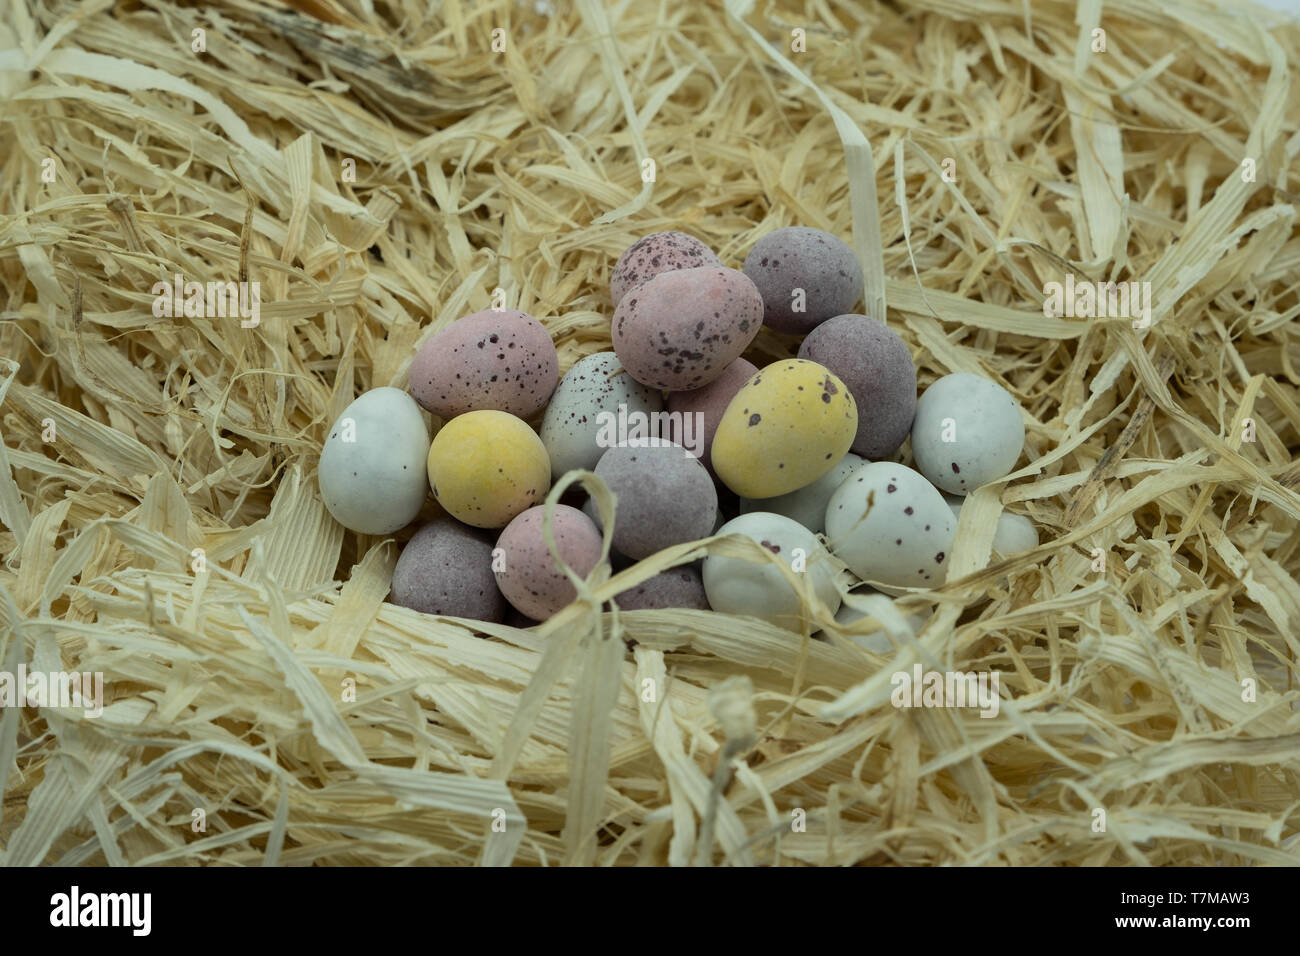 A pile of colourful chocolate eggs on a bed of fresh straw ready for Easter Stock Photo